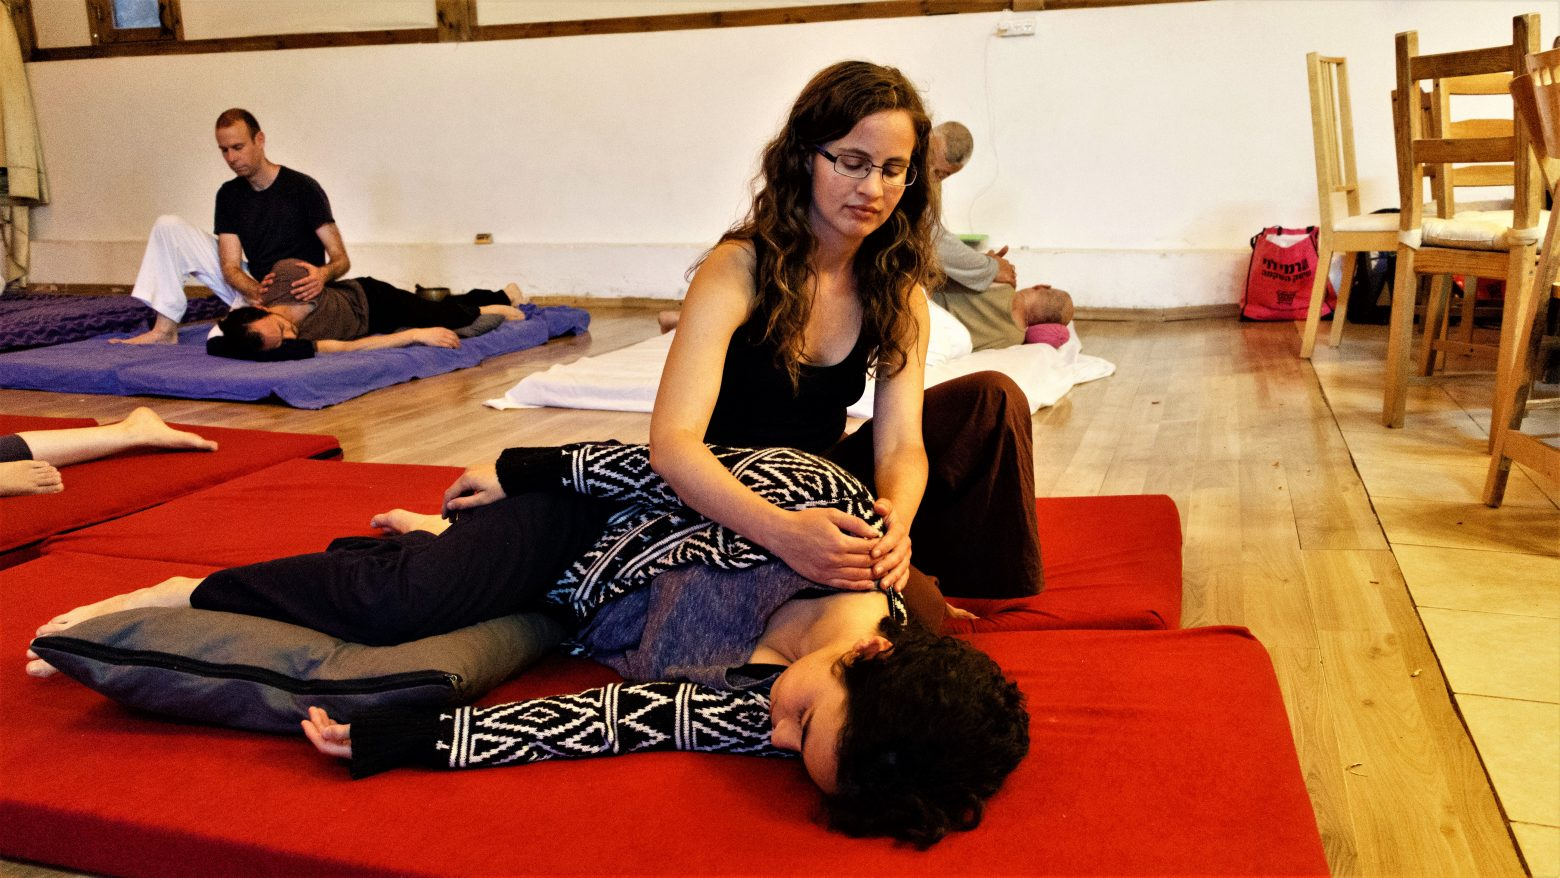 Noa practices with the shiatsu community in the Jerusalem hills.